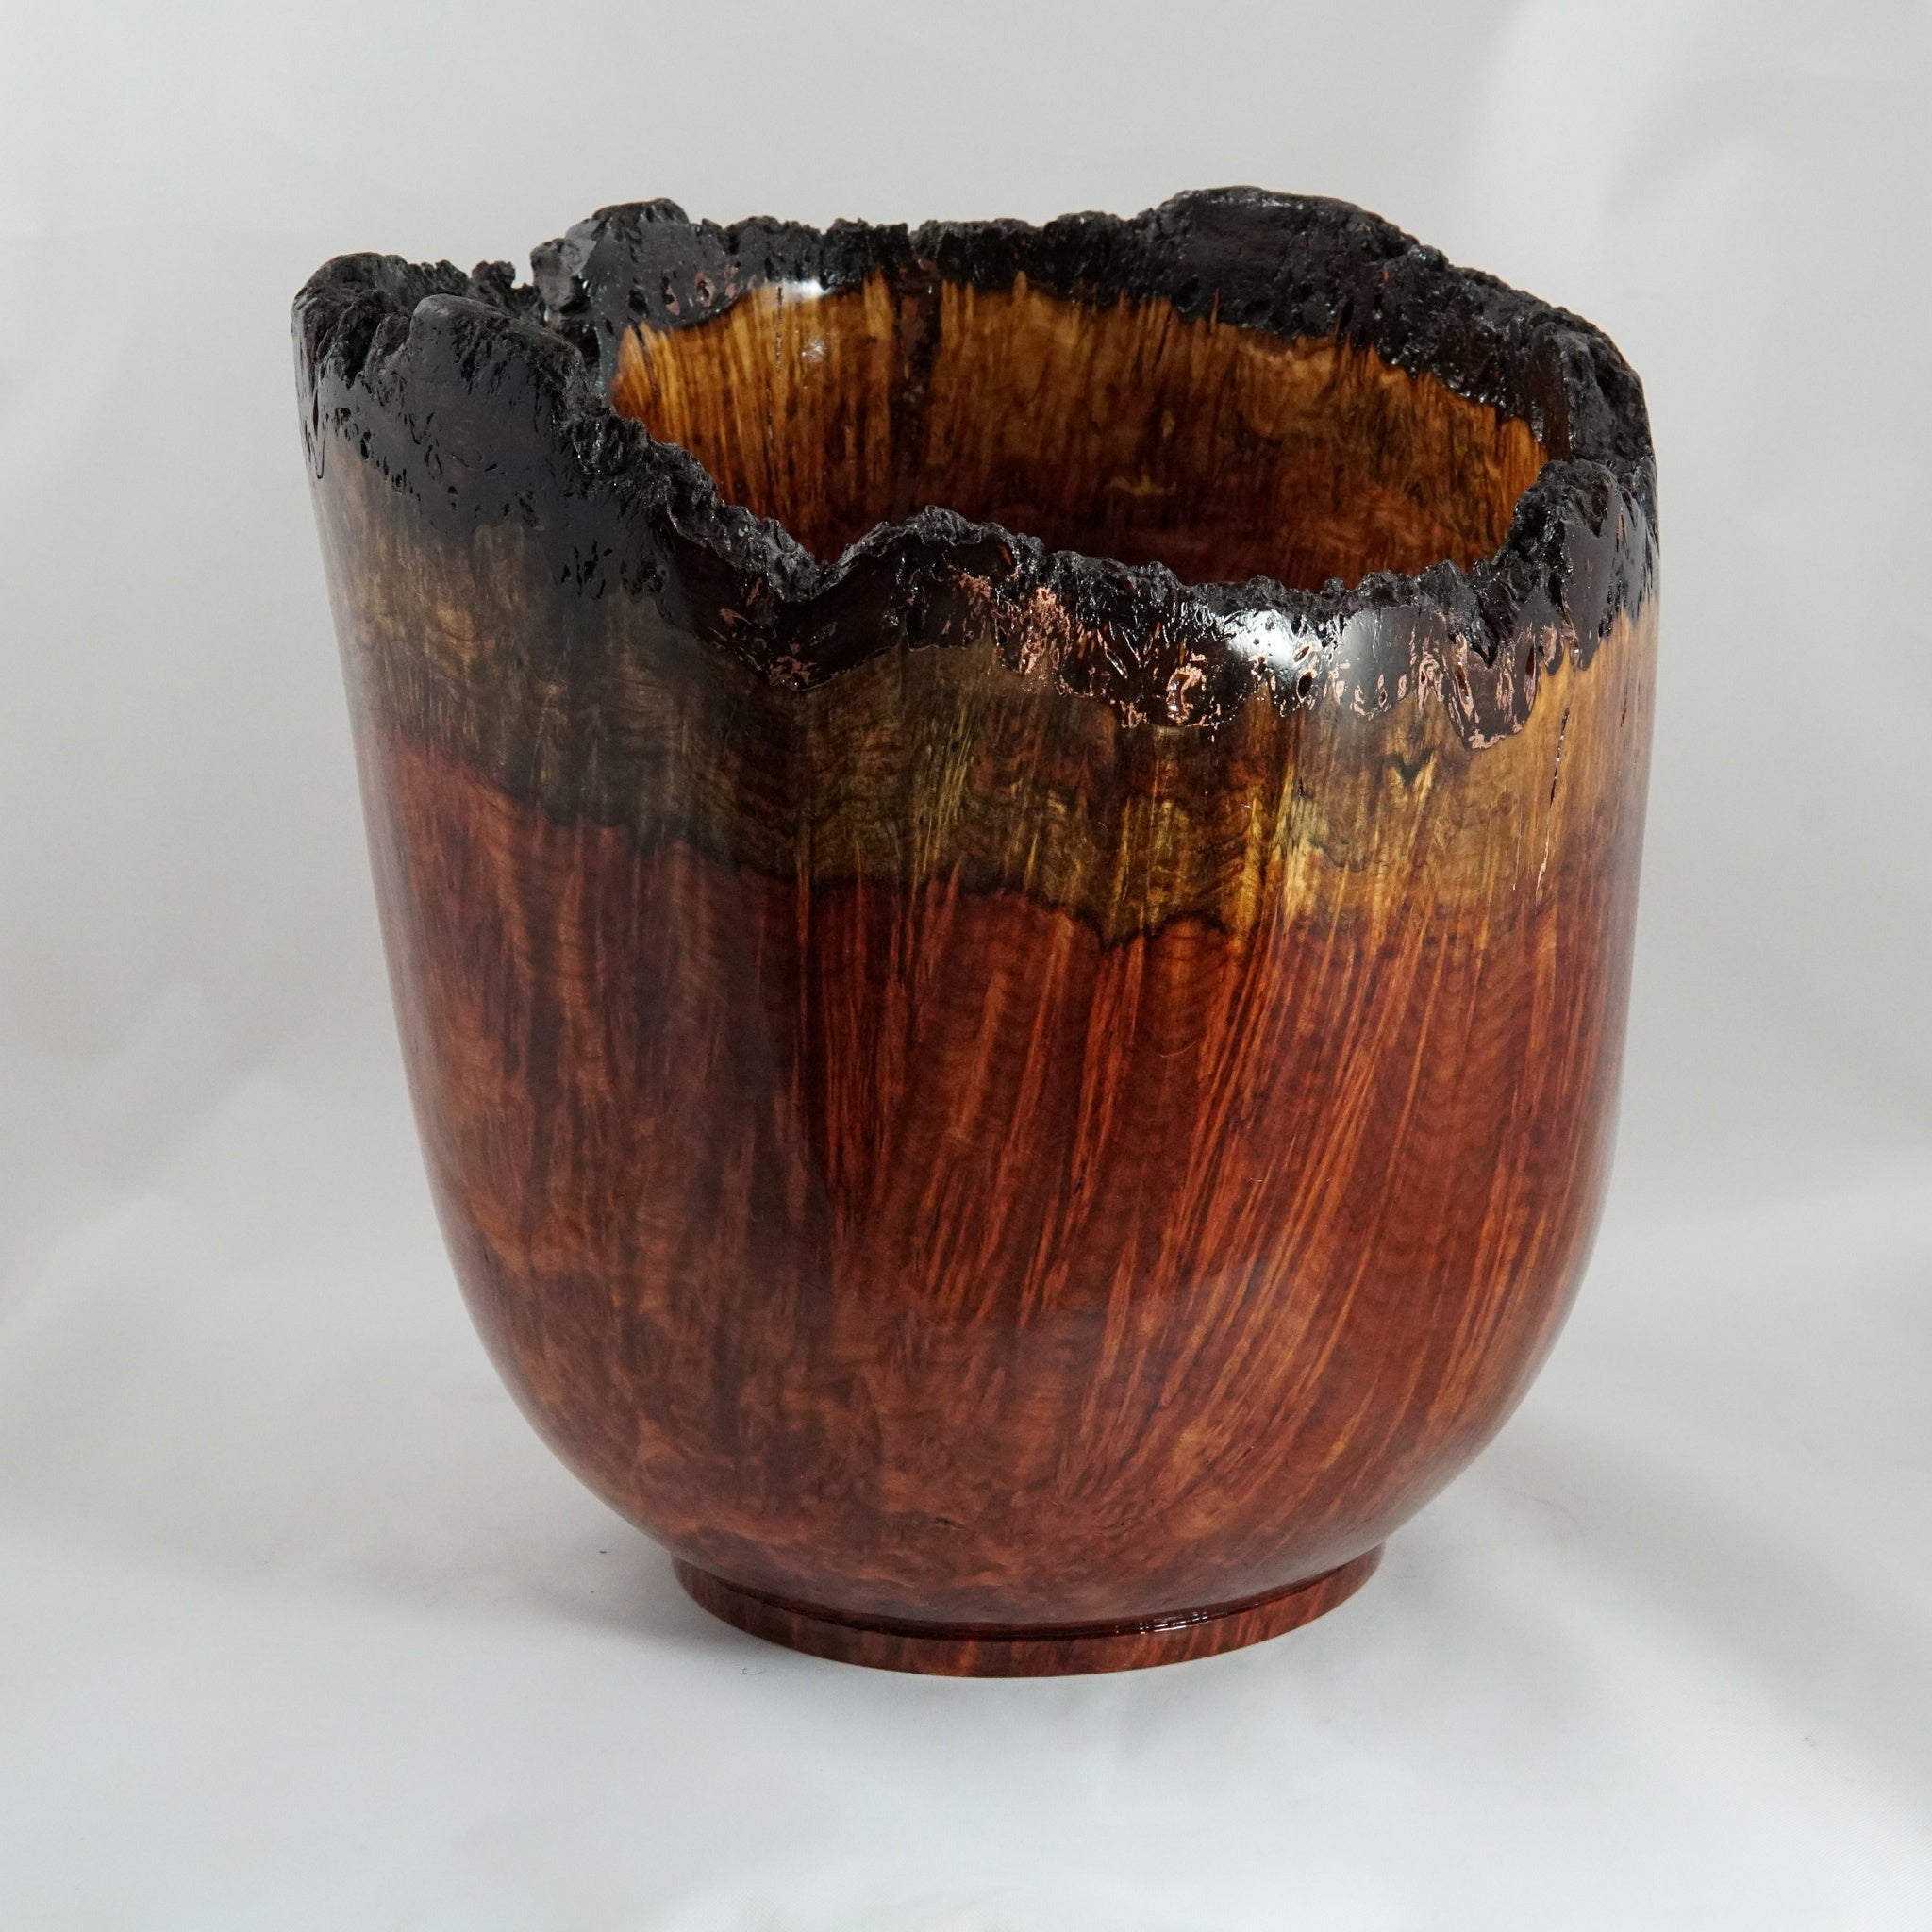 Redwood Burl bowl by Mat King - 11172